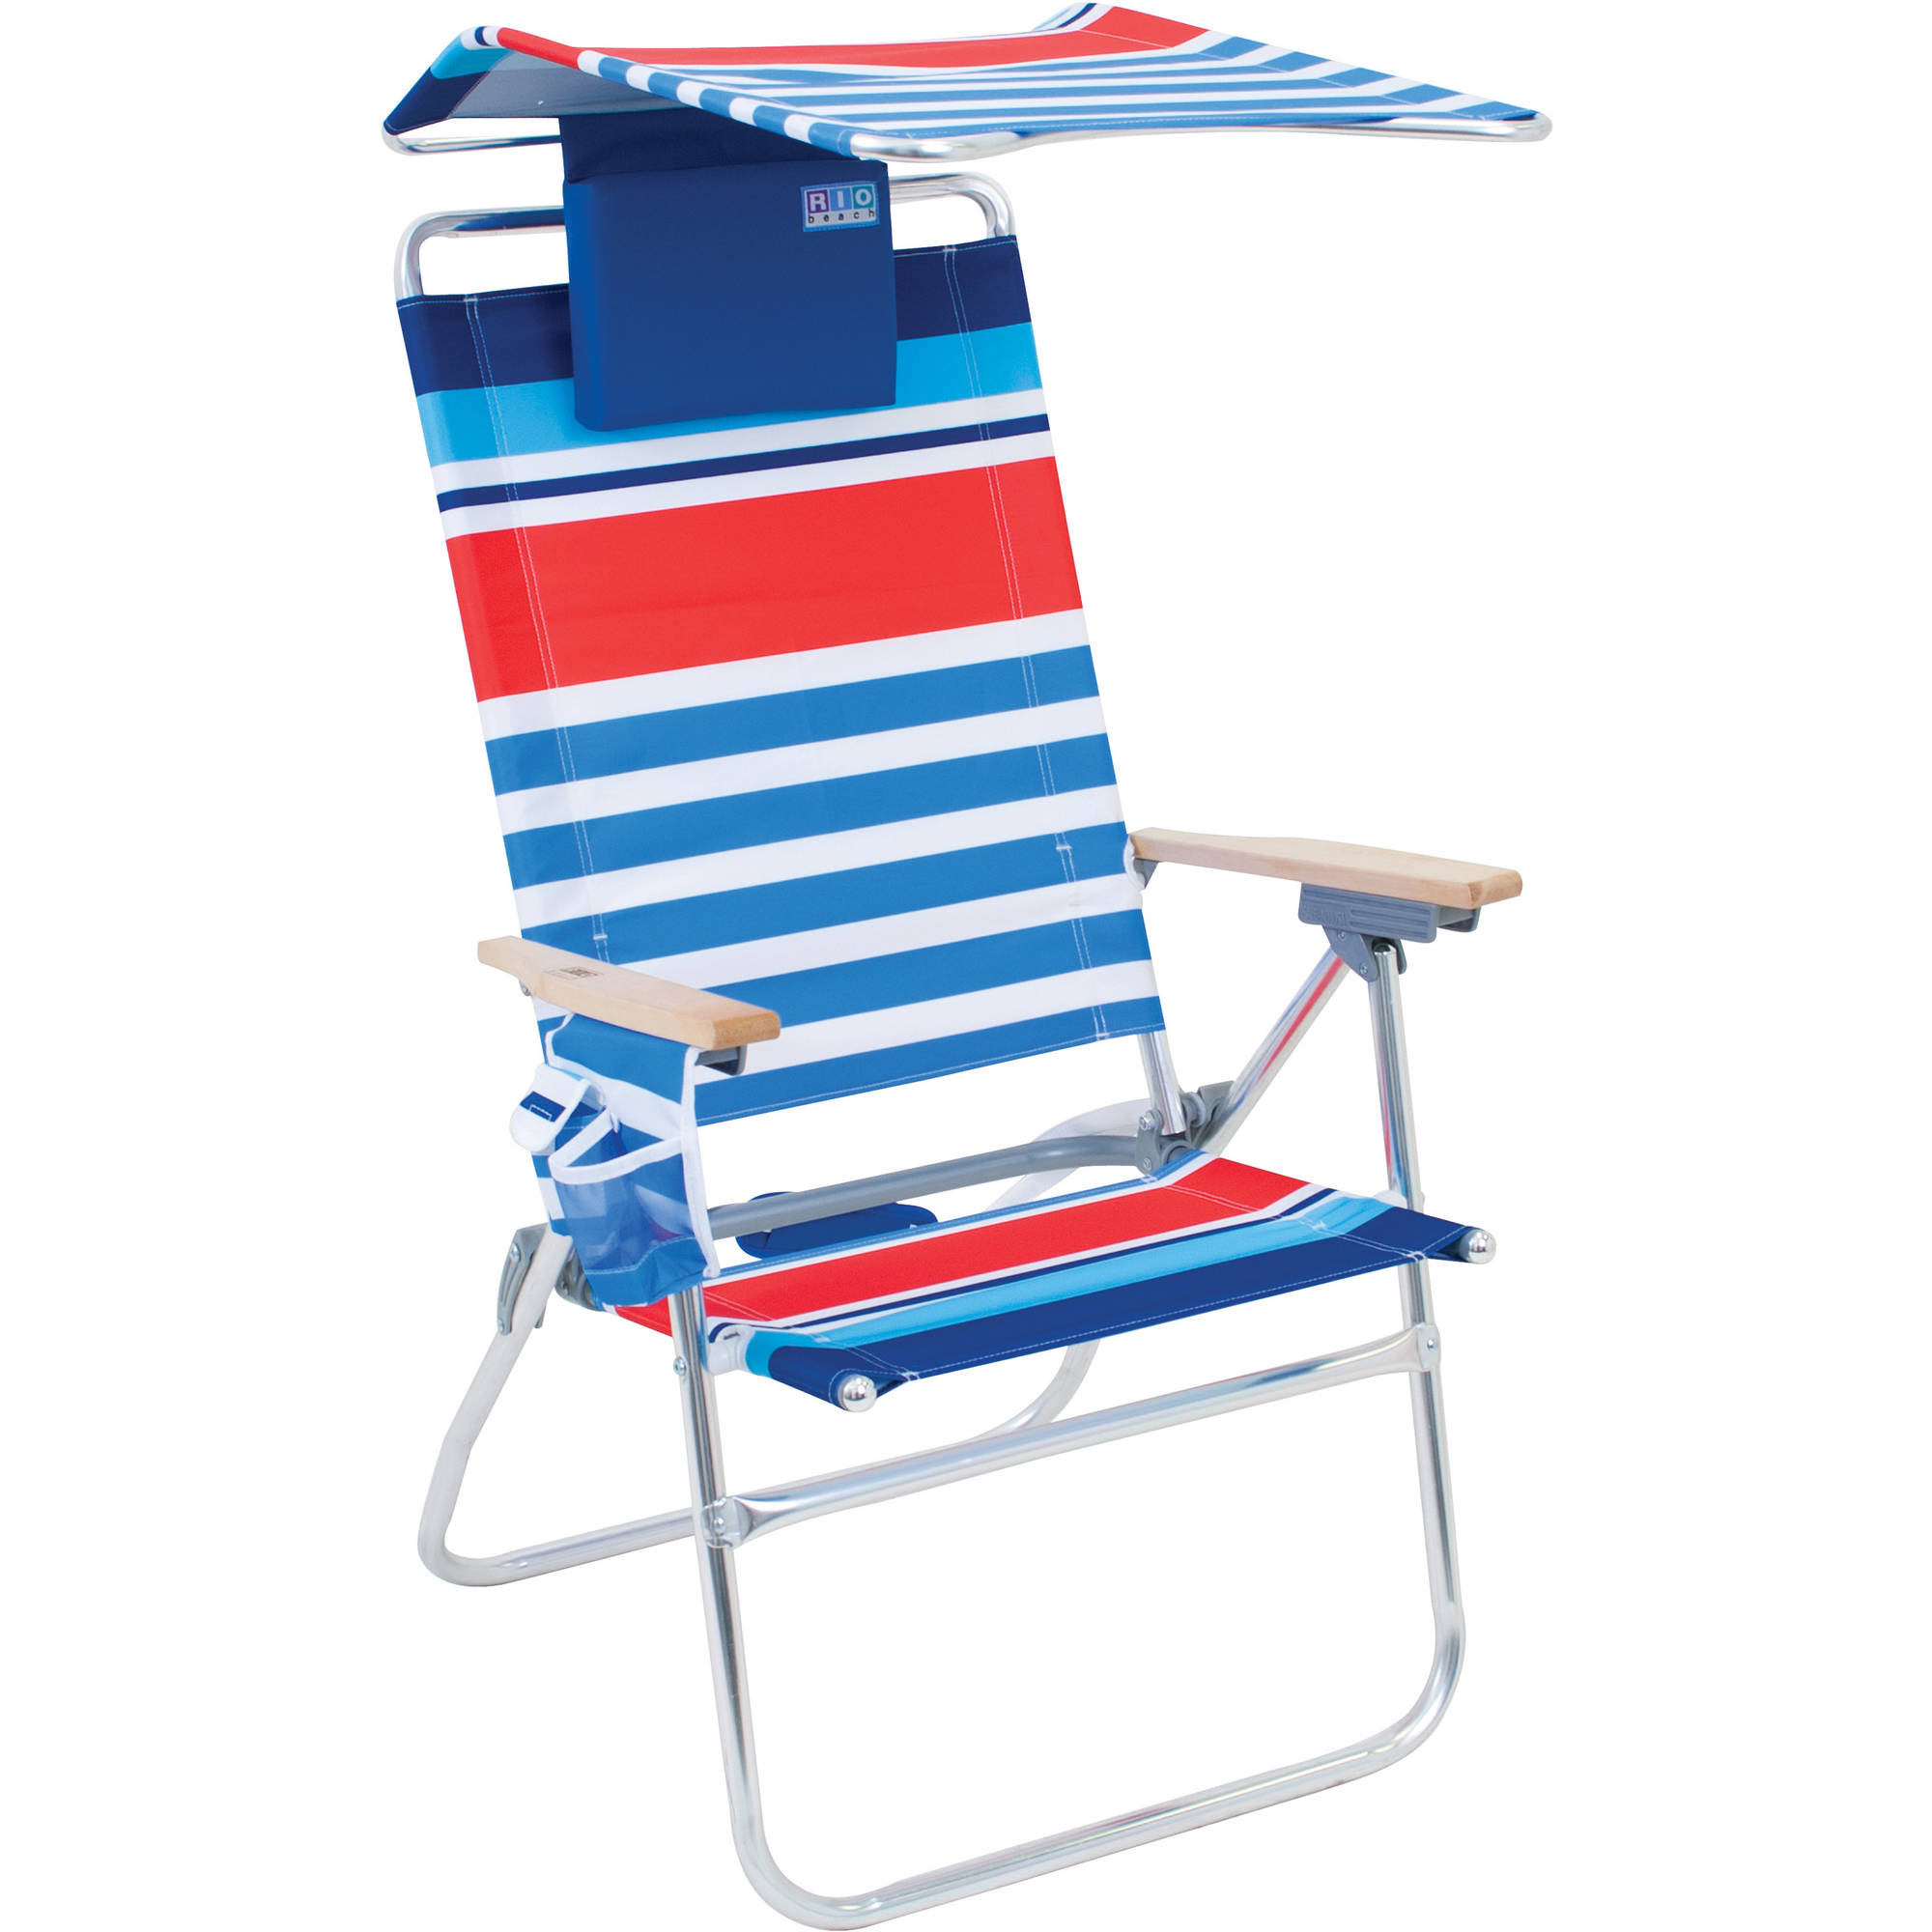 RIO Hi Boy Beach Chair with Shade Canopy (UPF 50+) – Aluminum Frame with 17 inch Seat Height